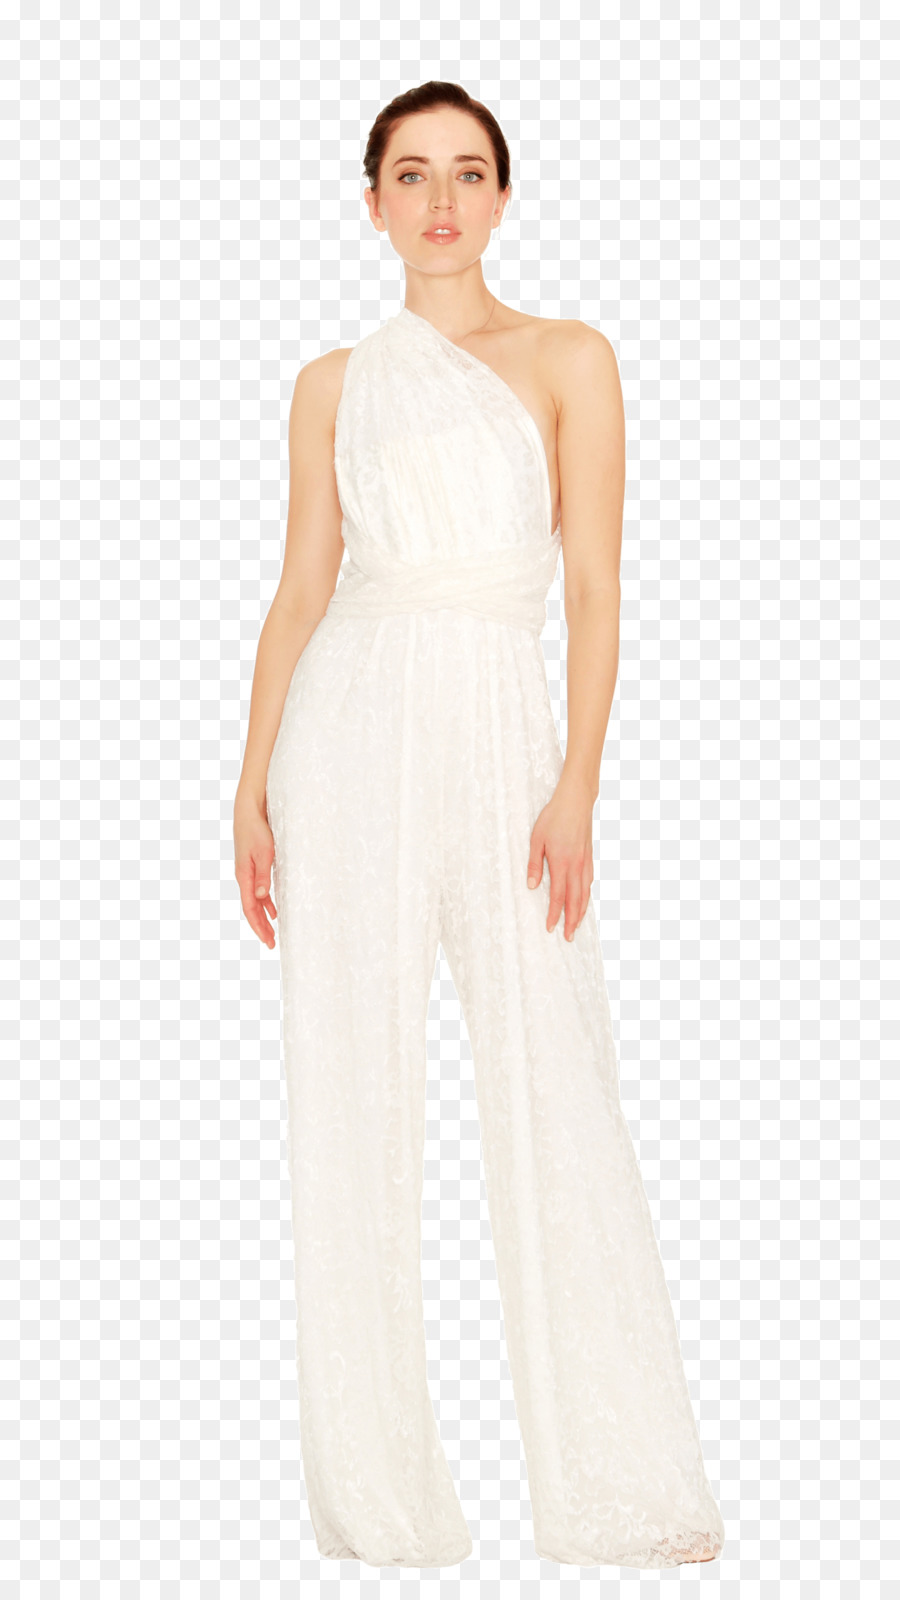 67a11735121 Wedding dress Jumpsuit Fashion Cocktail dress - dress png download - 1440  2560 - Free Transparent Wedding Dress png Download.